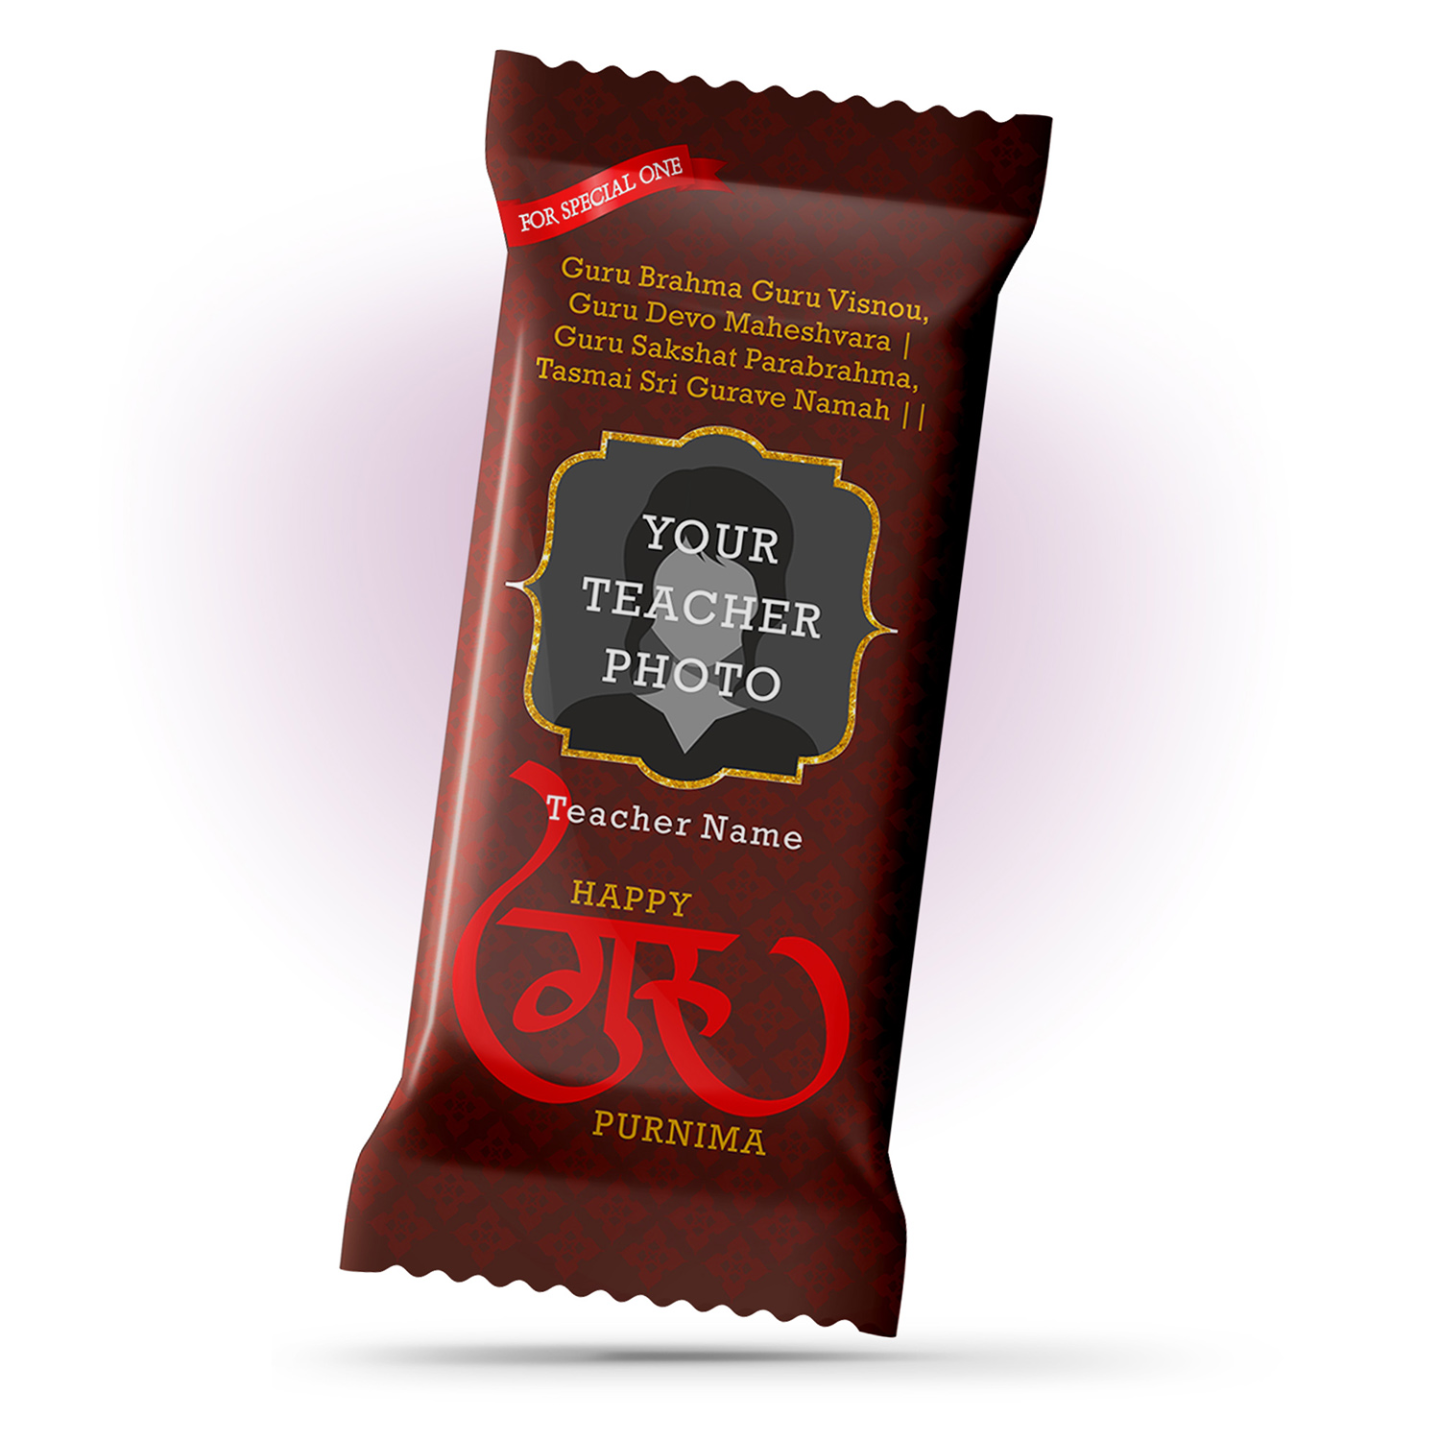 Guru Purnima Gift, Personalize Chocolate Large Bar 100g